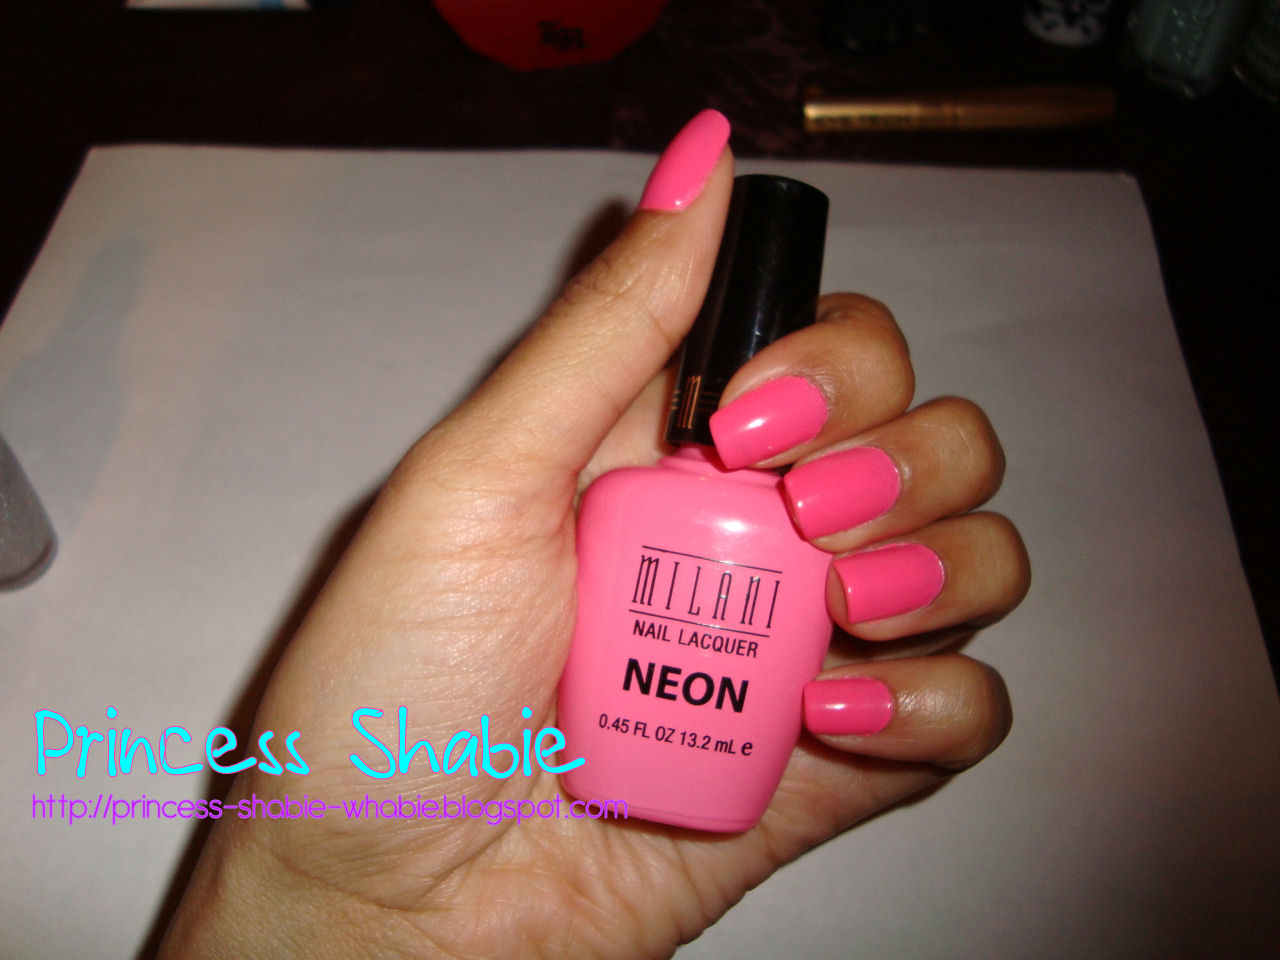 crackle nail polish,  nail polish colors,  neon nail polish,  nail polish bottle, spilled nail polish,  bright nail polish-124